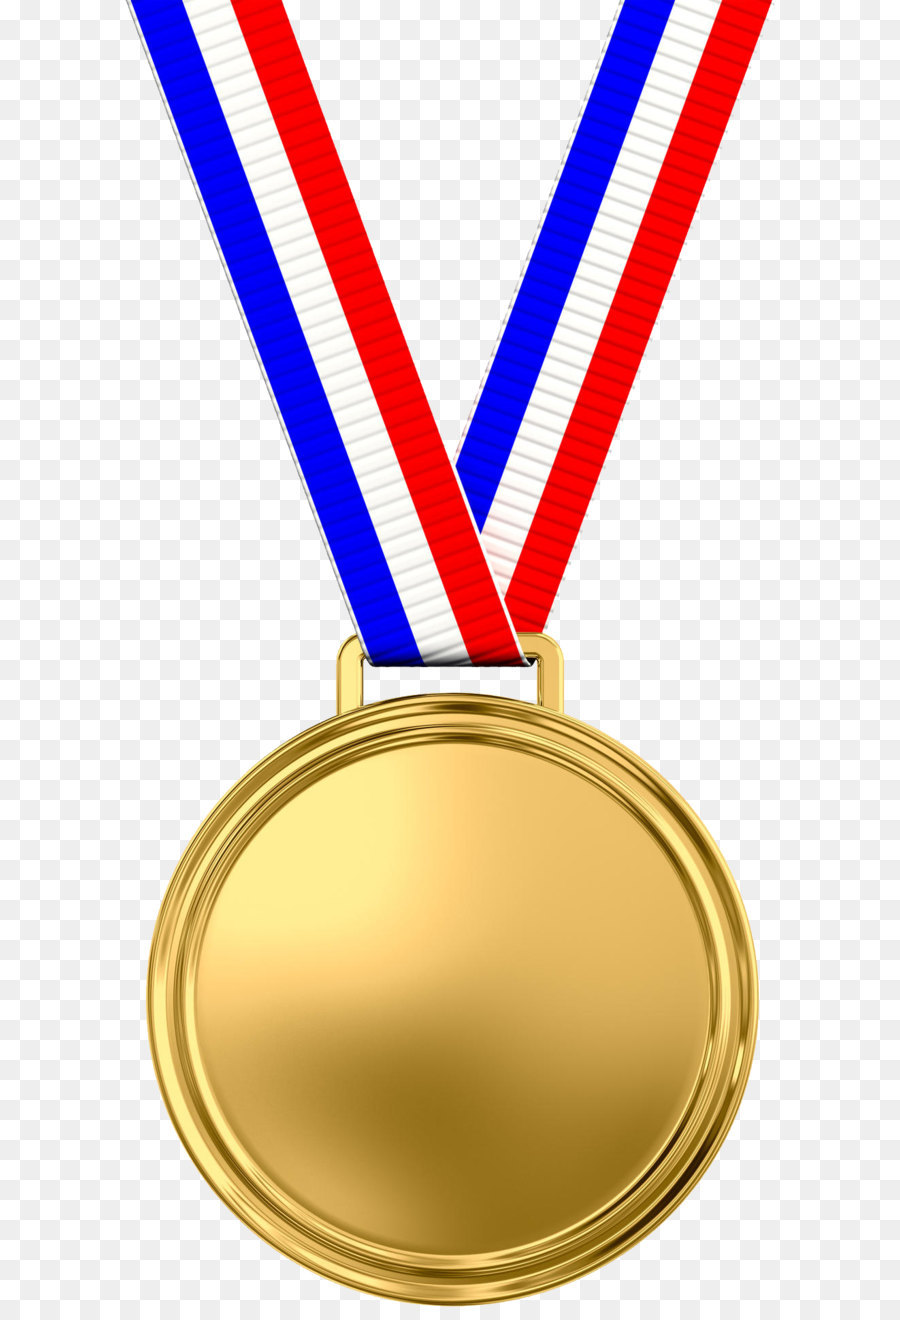 Free clipart gold medal 1 » Clipart Station.